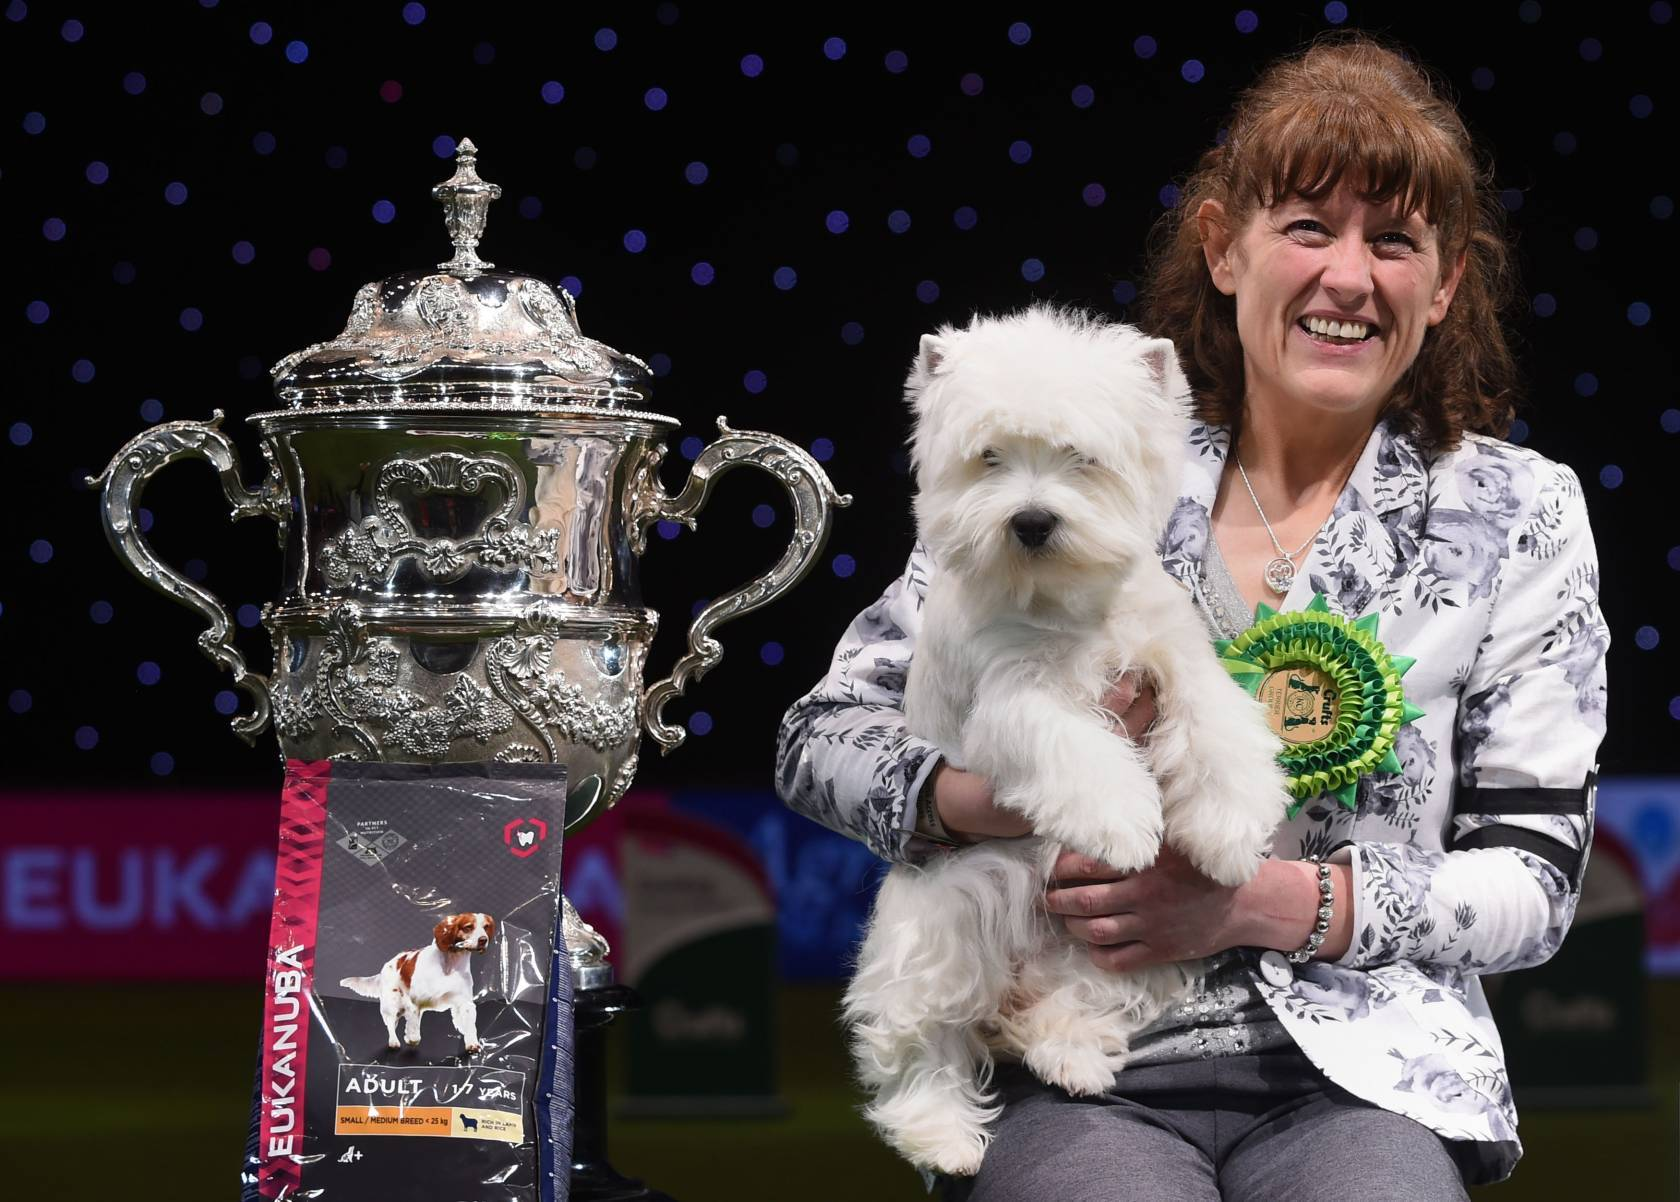 Devon the West Highland Terrier (with handler) who has been named  Best in Show at Crufts 2016 at the NEC, Birmingham.